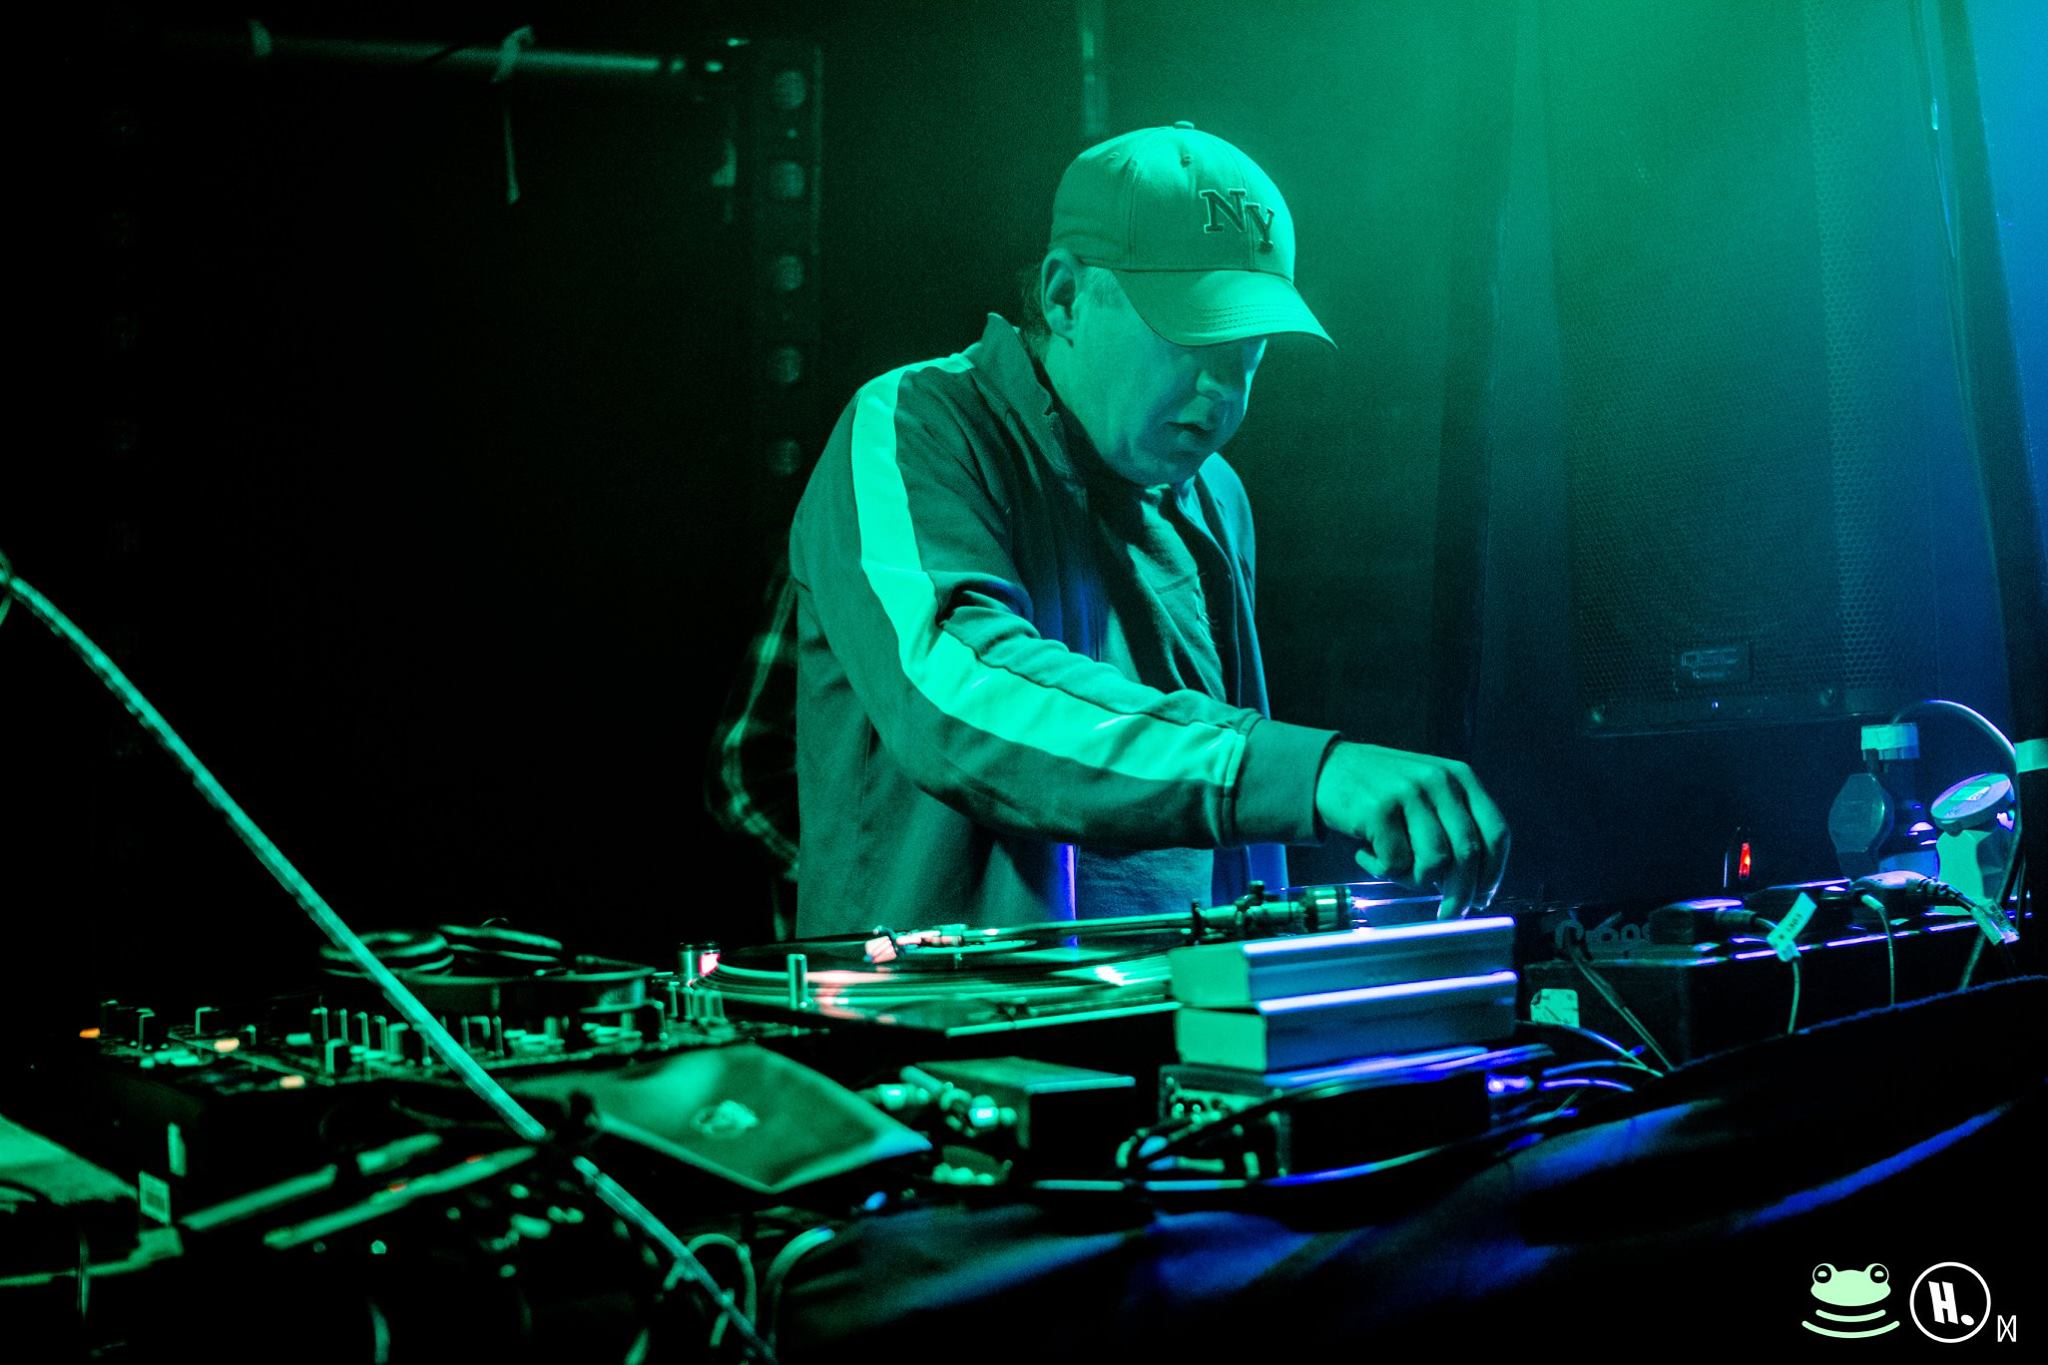 J.M.D - DJ / TURNTABLIST